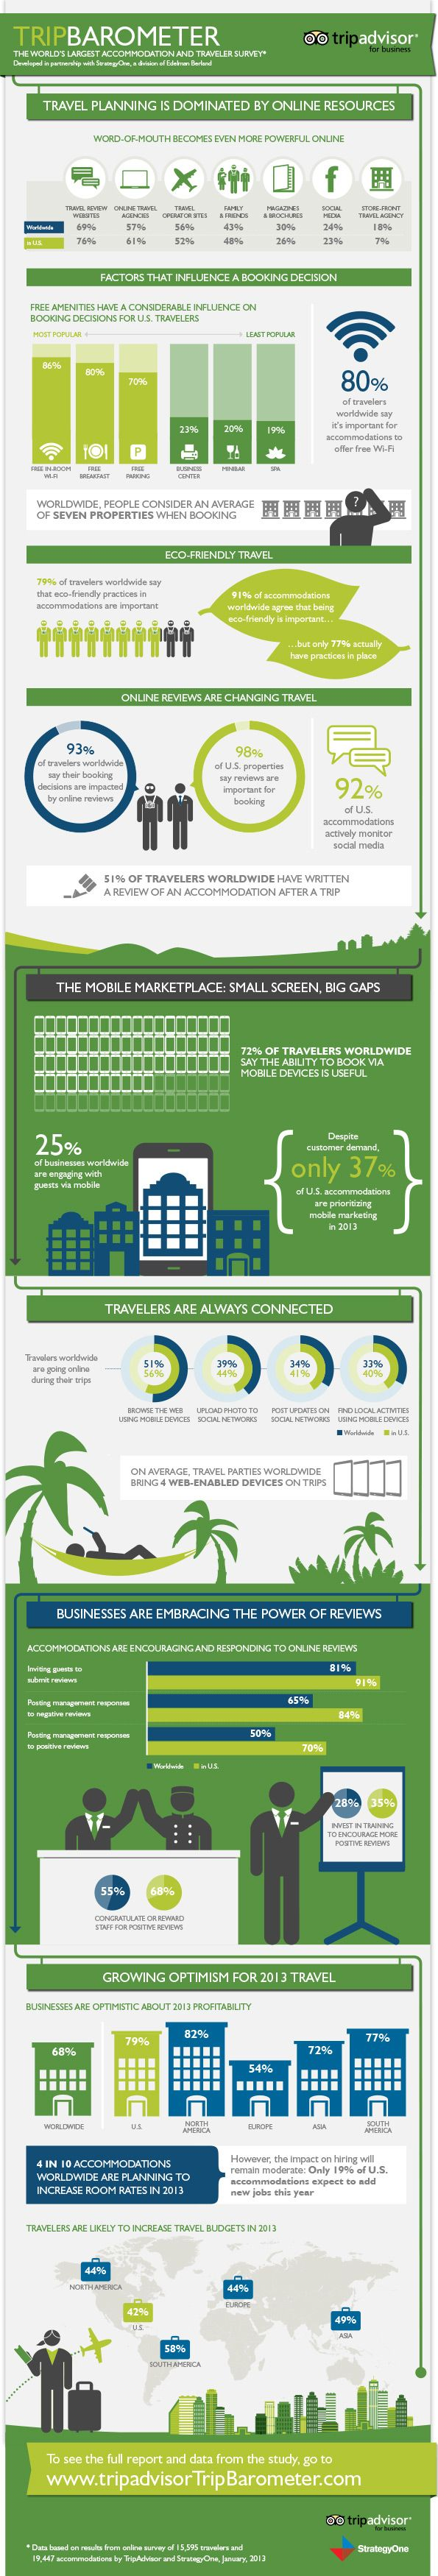 TripBarometer from TripAdvisor - a good infographic on social media and travel trends